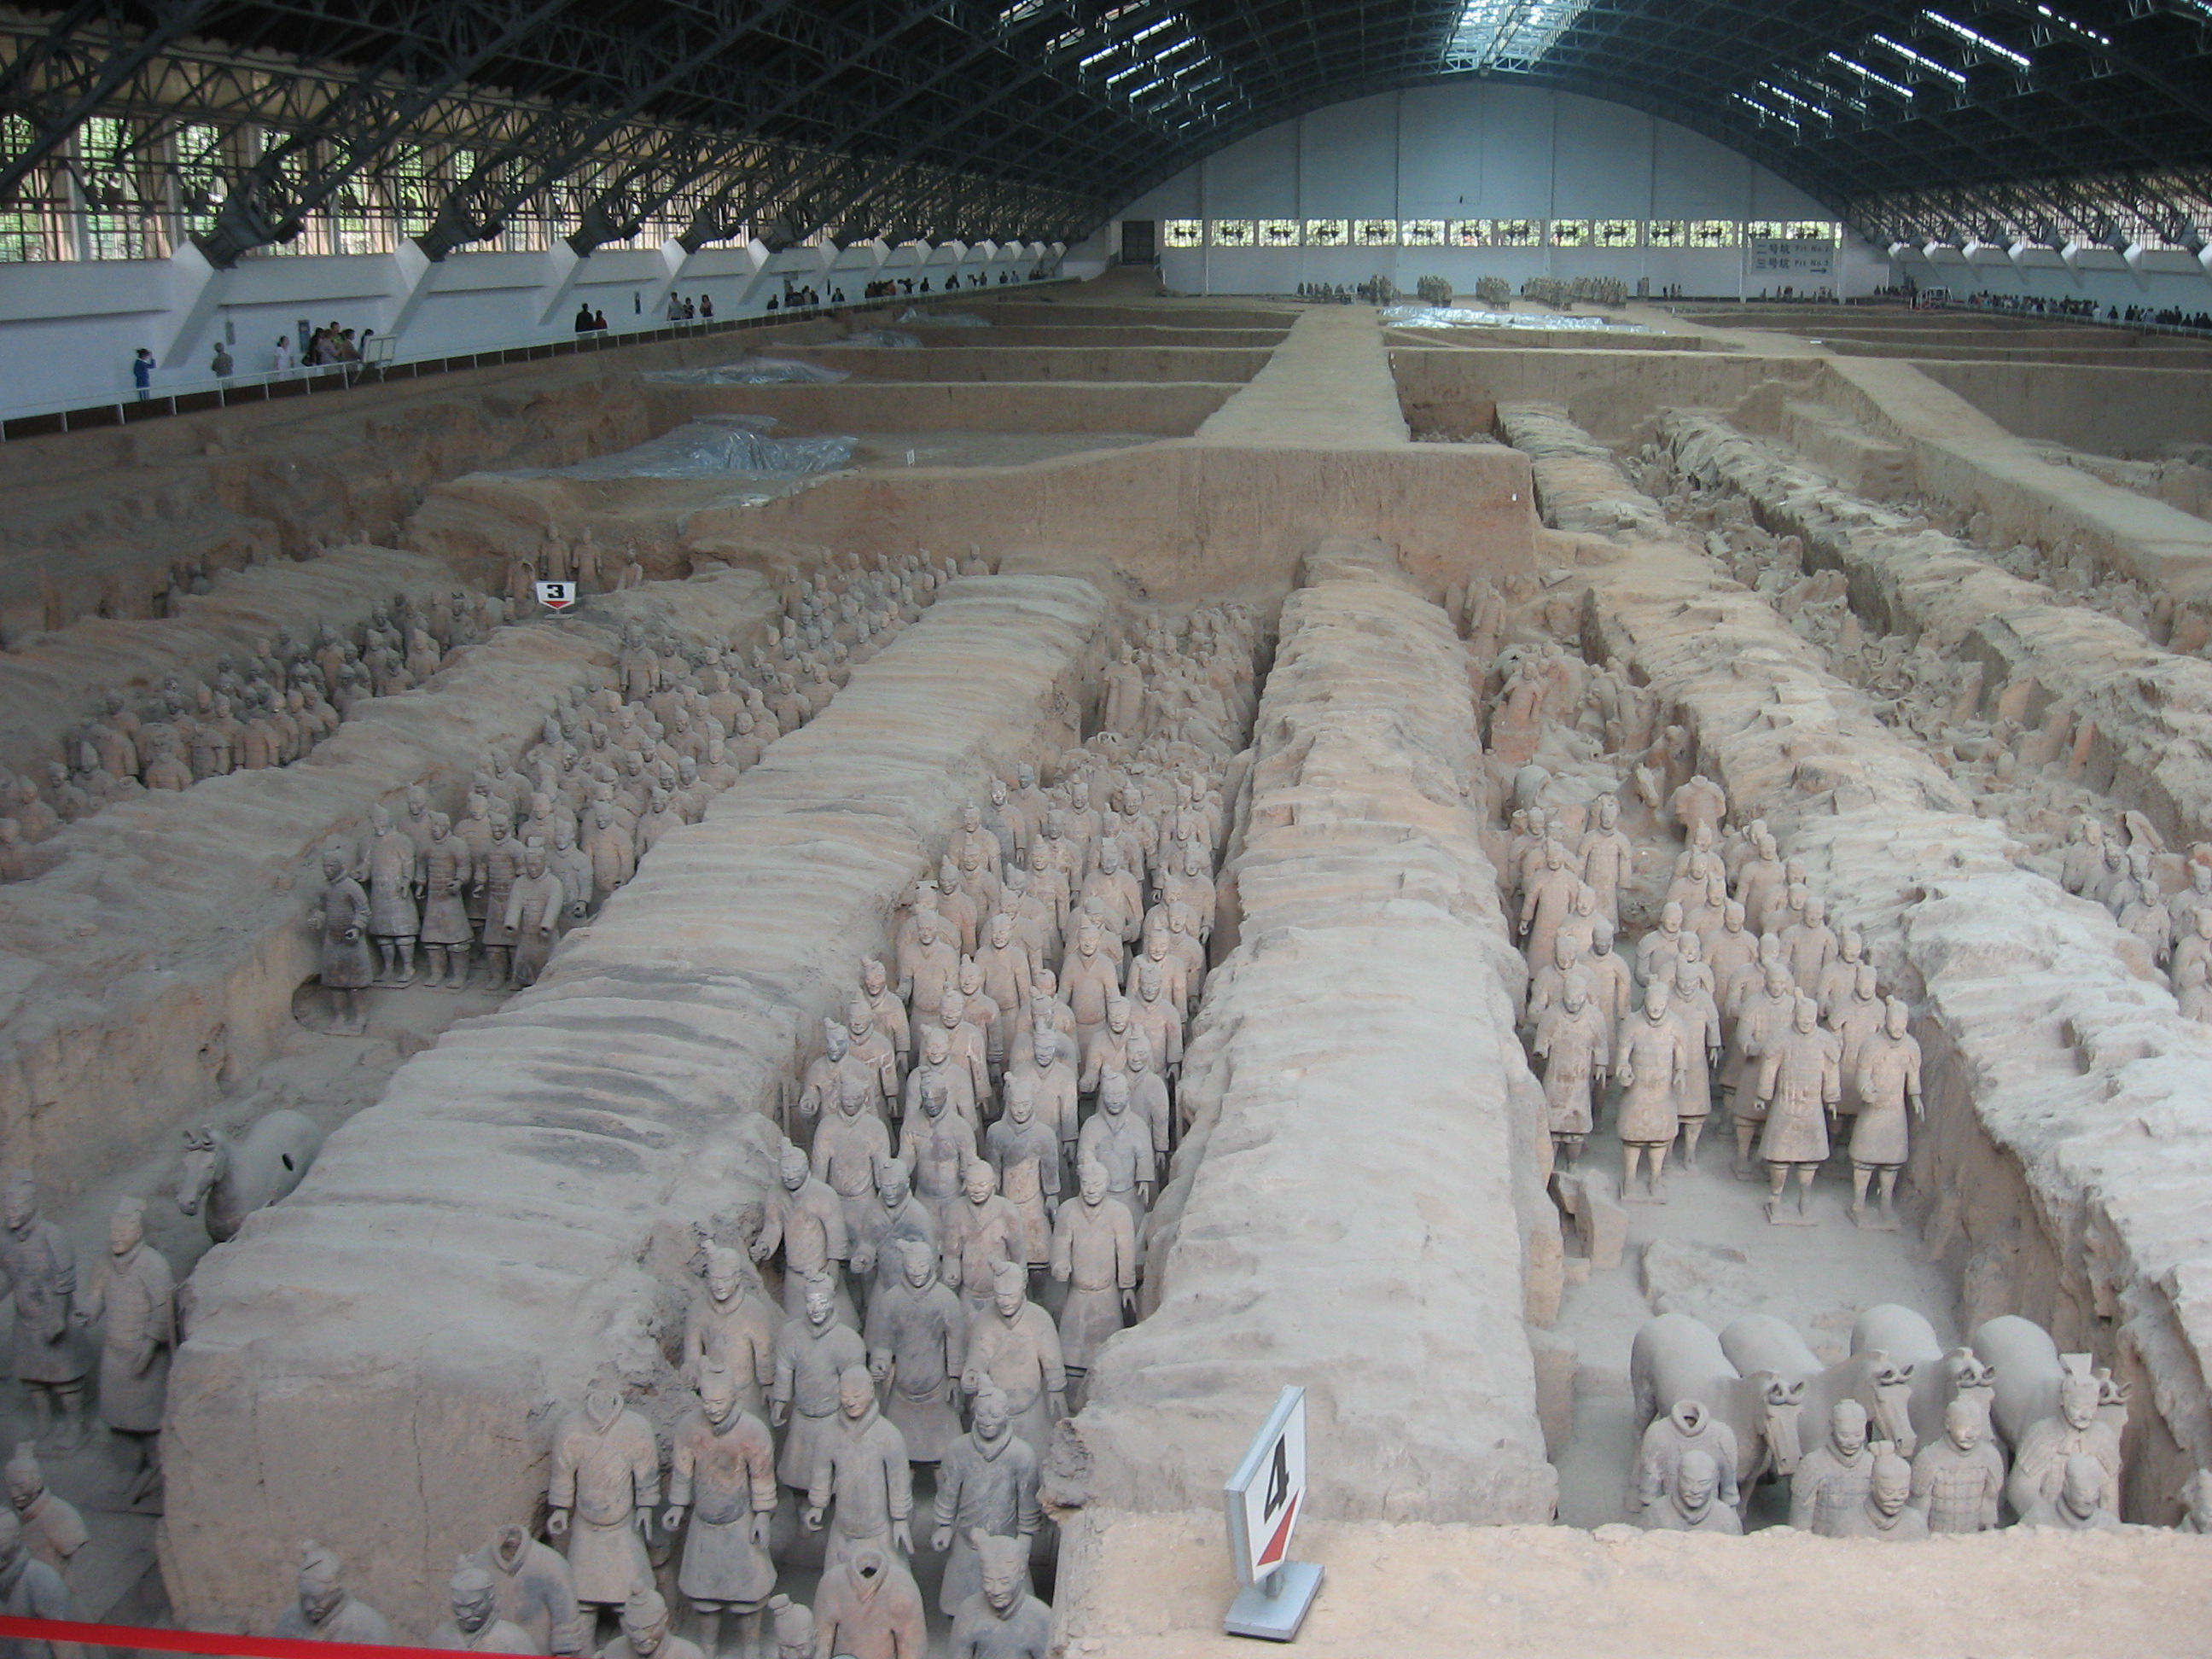 http://upload.wikimedia.org/wikipedia/commons/5/5e/Terracotta_Army-China.jpg